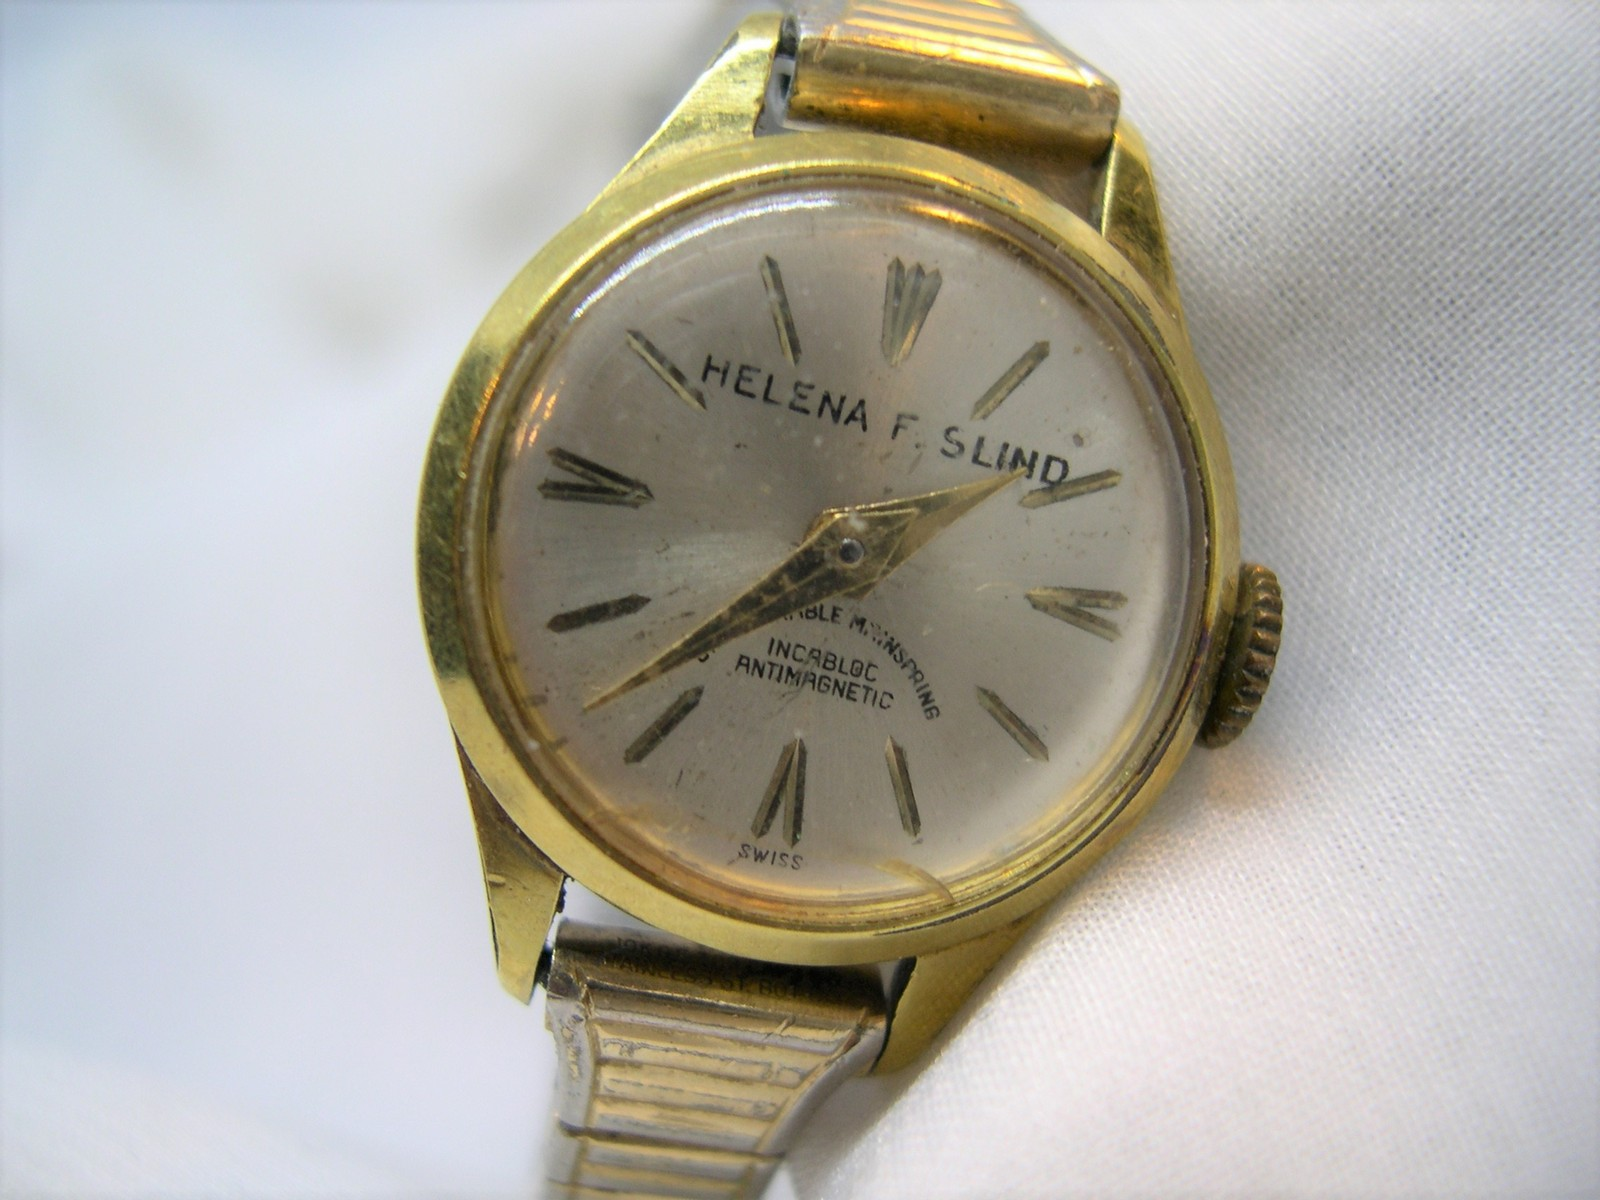 Primary image for L70, HELENA F. SLIND, Ladies Vintage Watch, Incabloc, Anti mag, Flex Band